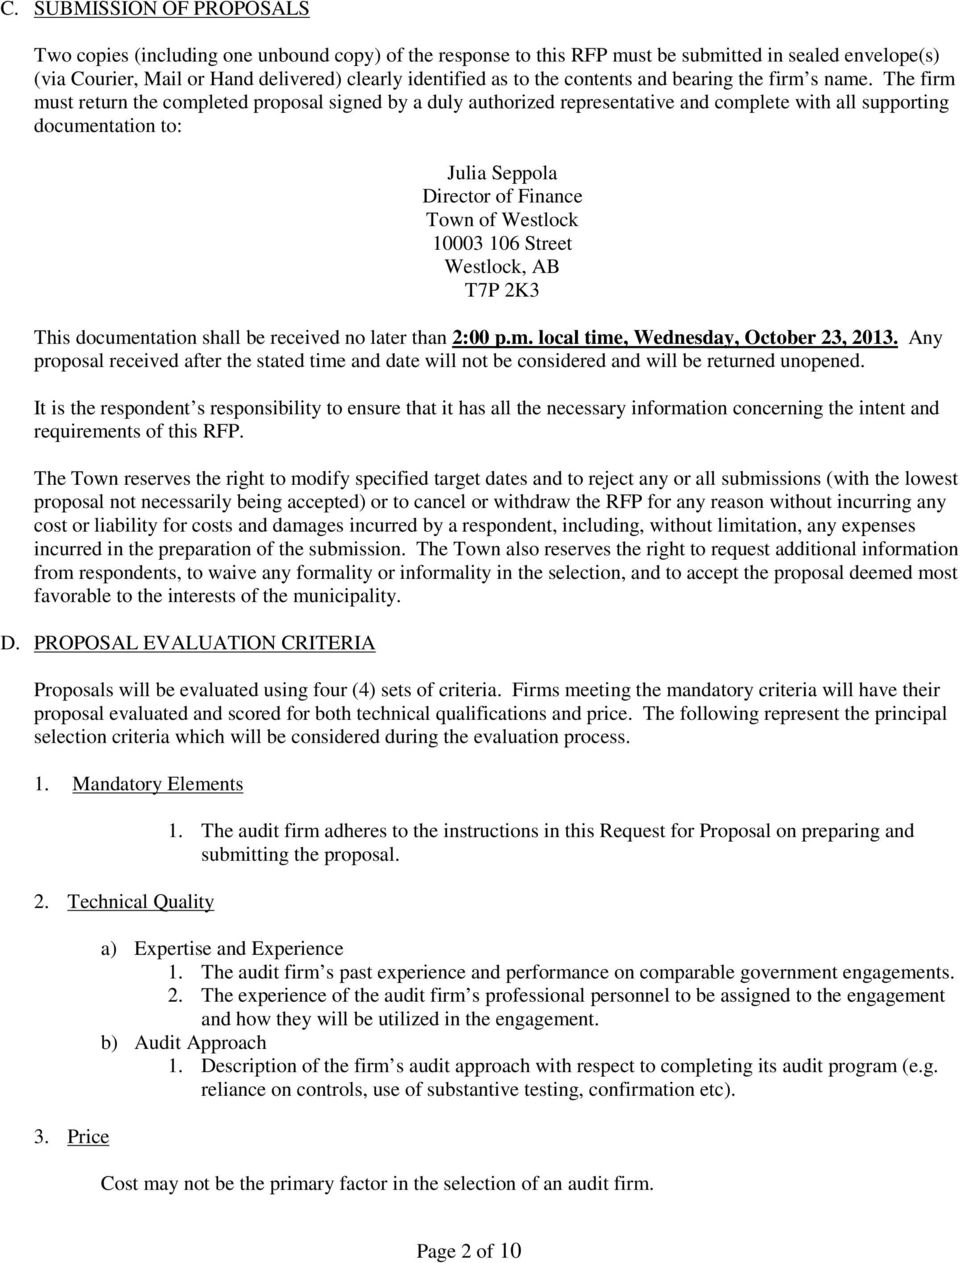 PROFESSIONAL AUDITING SERVICES REQUEST FOR PROPOSALS (RFP) - PDF